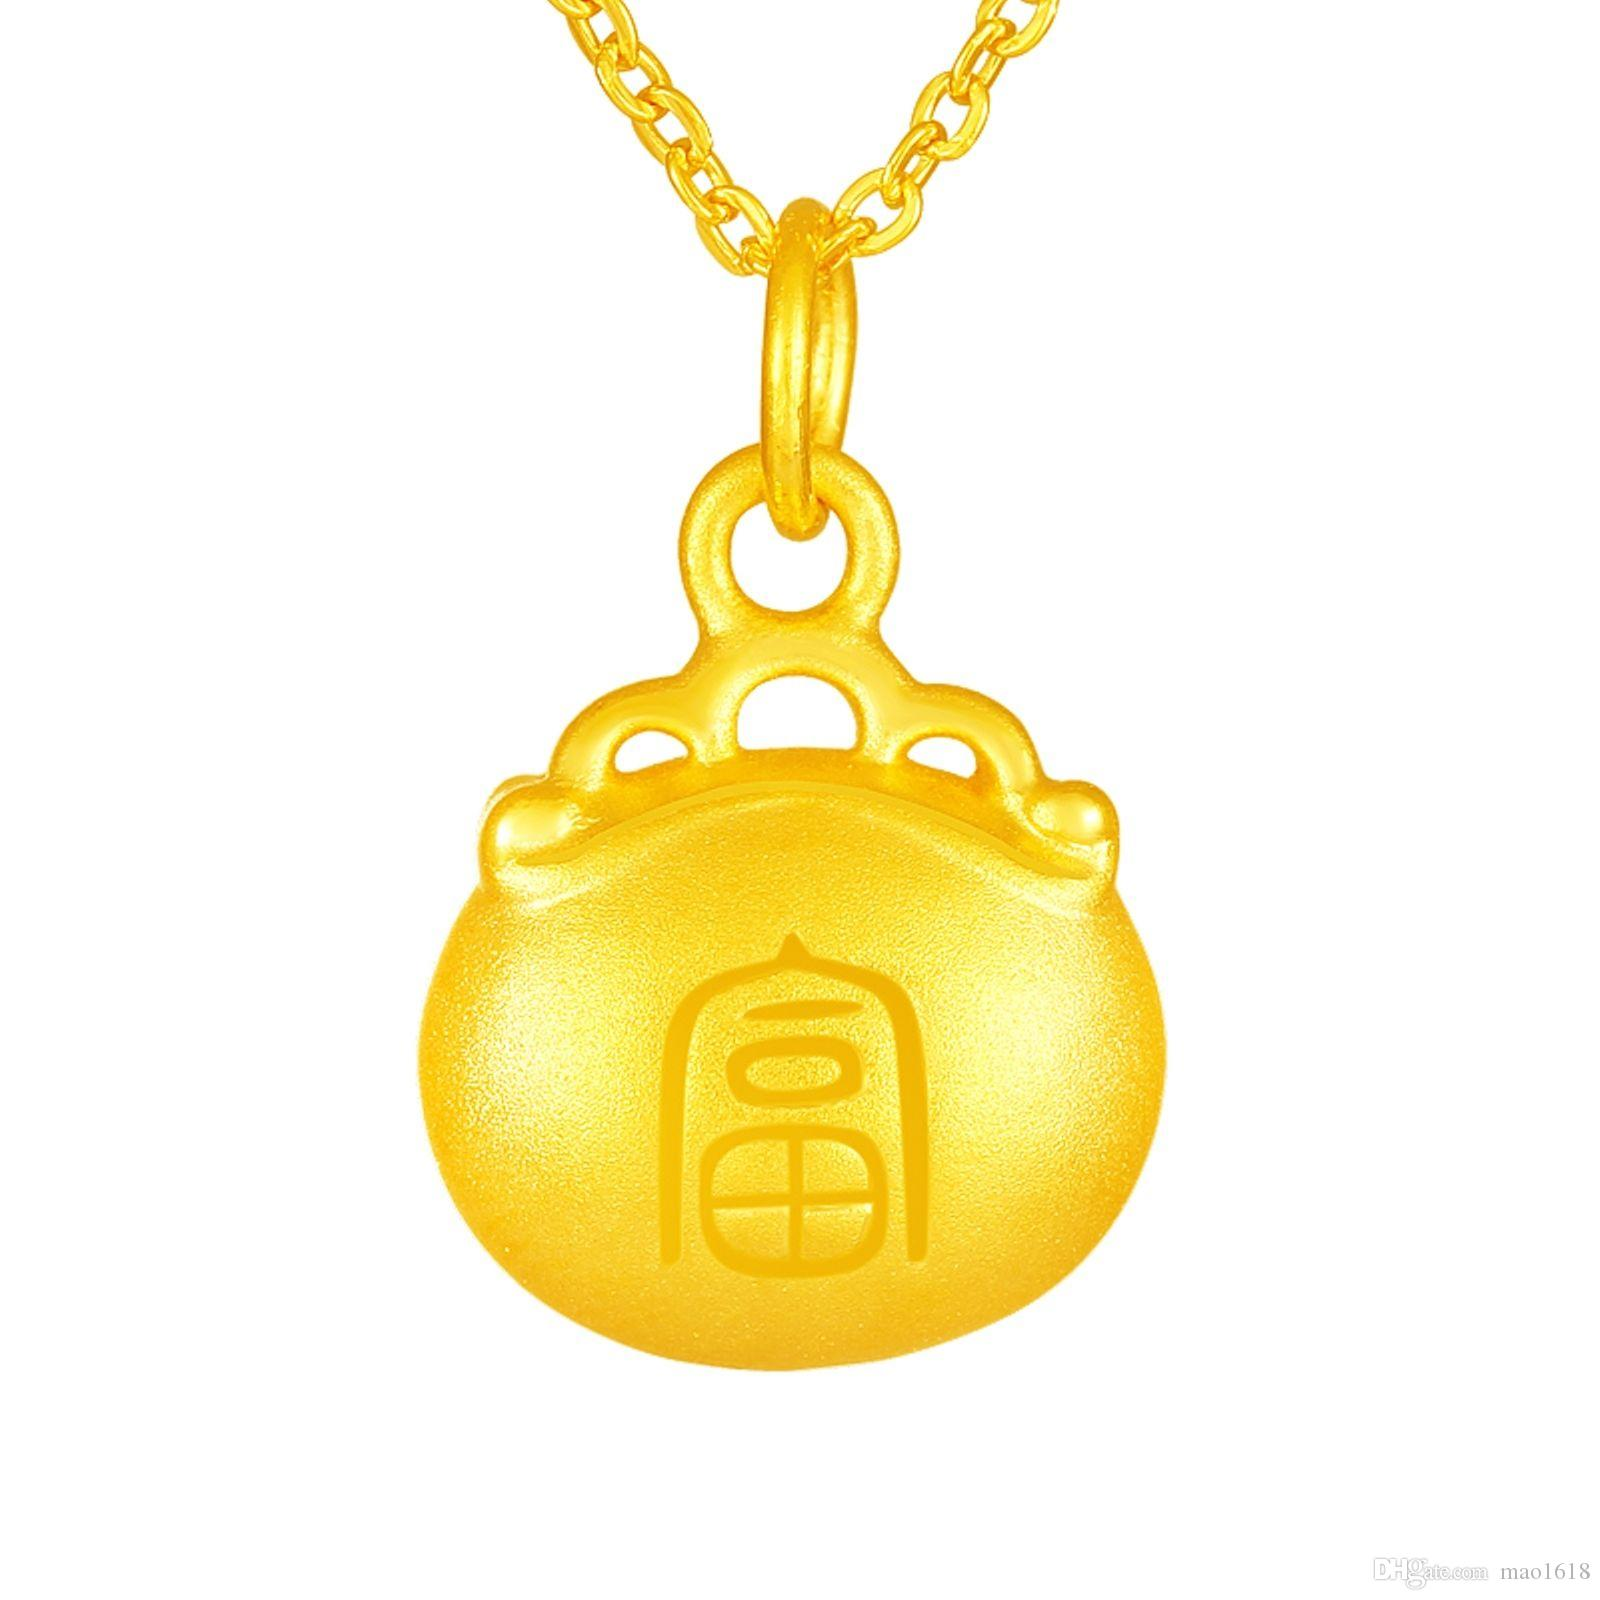 Compre pure 999 24k gold gold pendant 3d nuevo diseo rich and compre pure 999 24k gold gold pendant 3d nuevo diseo rich and expensive lock bag pendant 112g a 8443 del mao1618 dhgate aloadofball Images